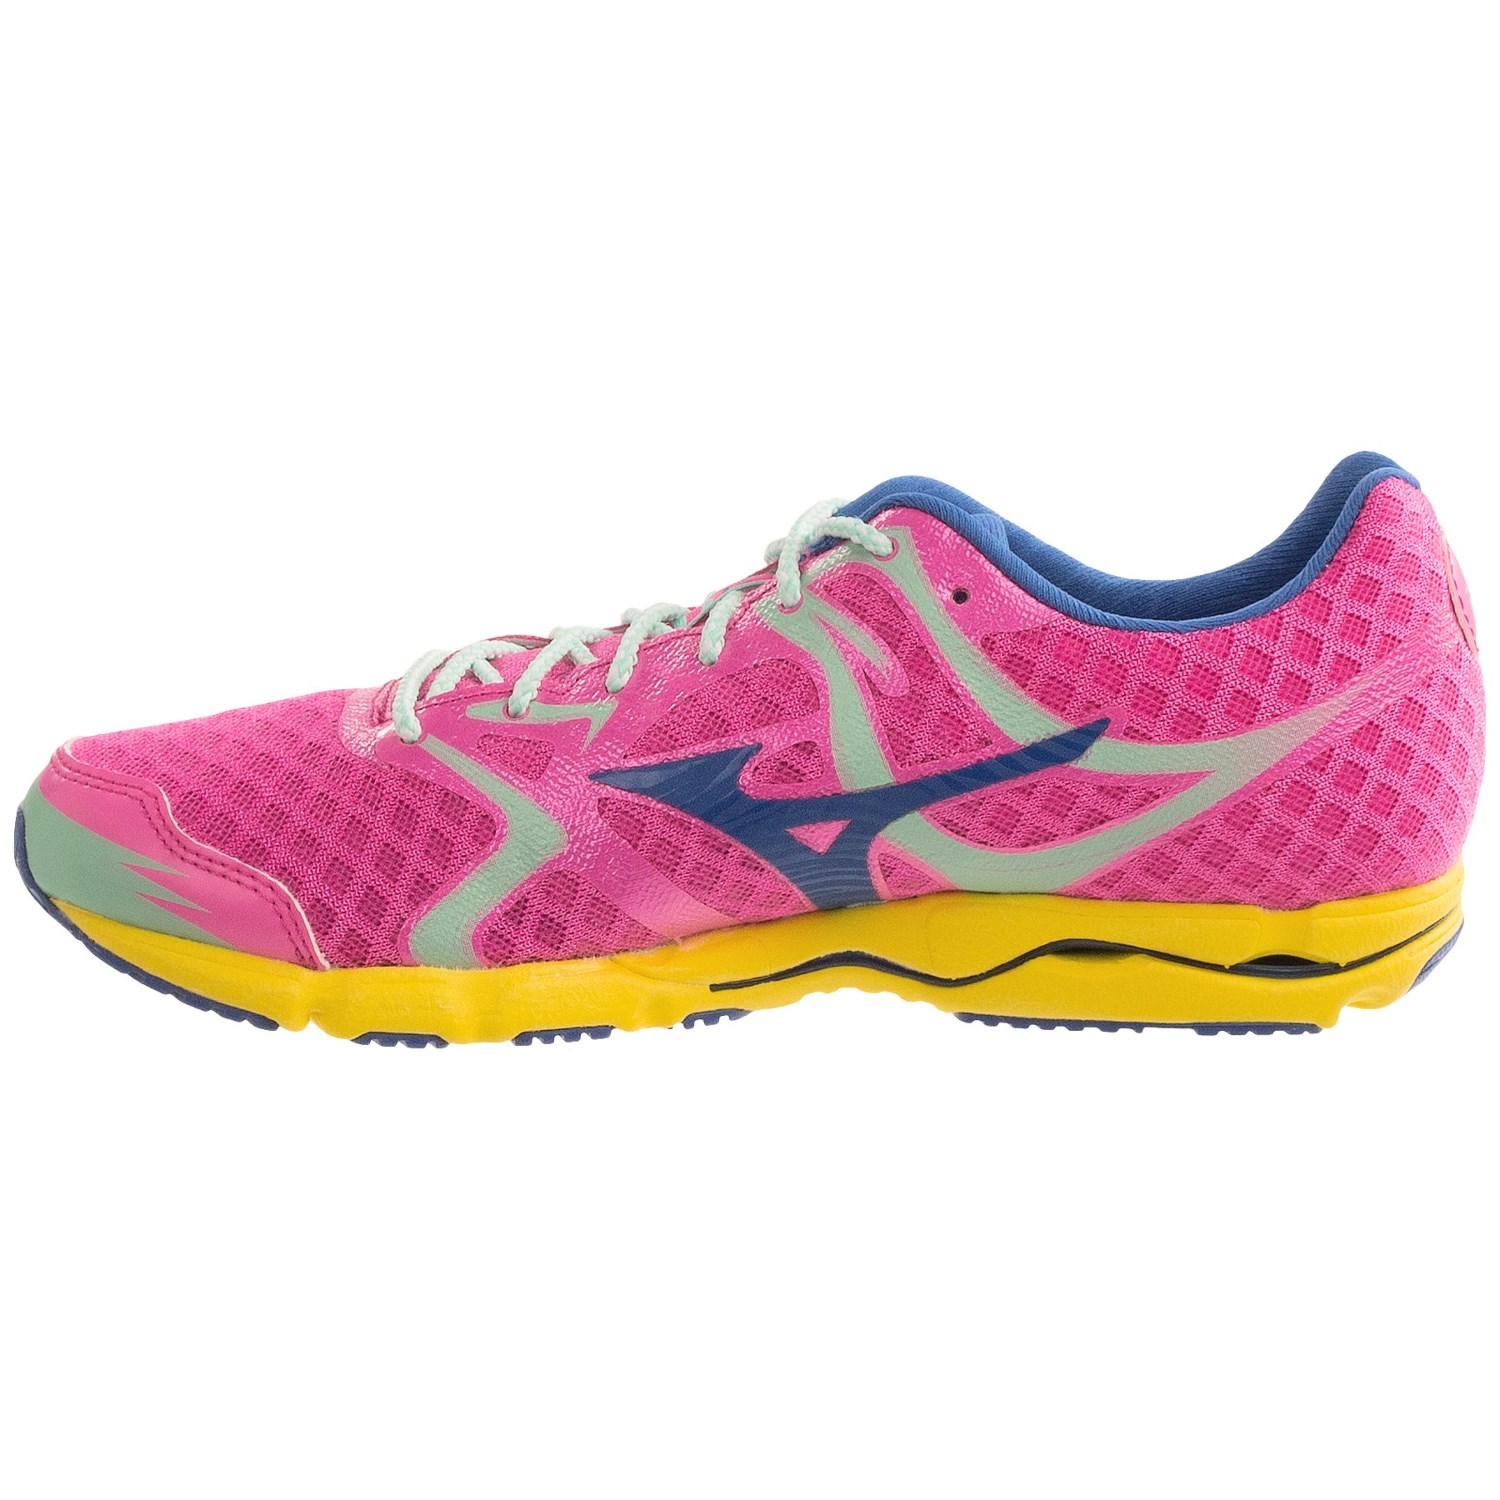 Elegant Clothing Shoes Amp Accessories Gt Women39s Shoes Gt Athletic